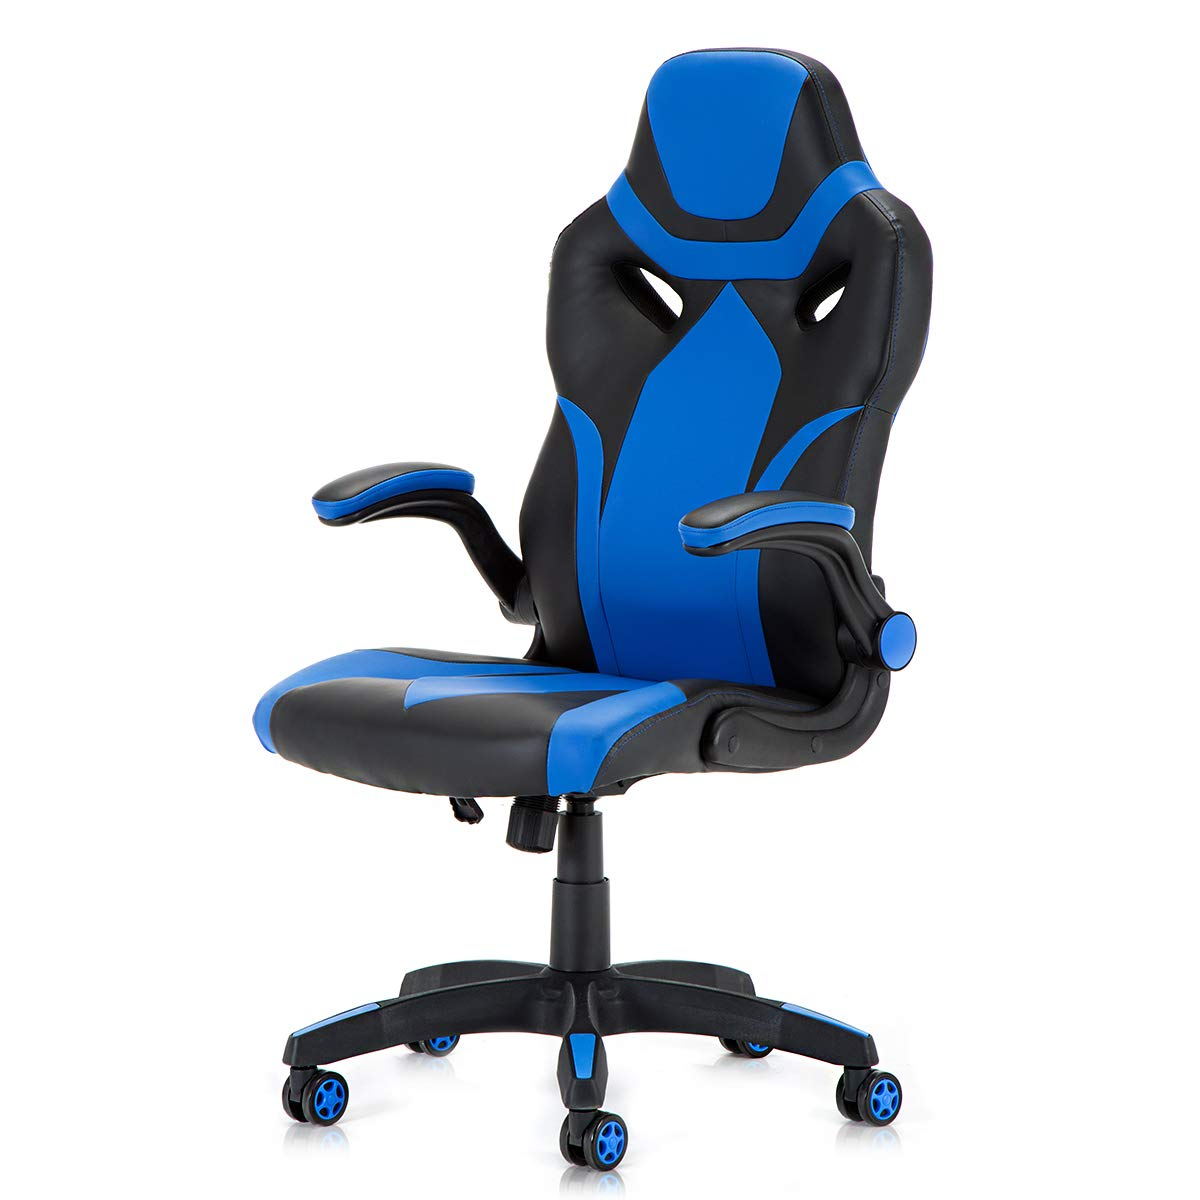 Racing Style PU Leather Gaming Chair – Ergonomic Swivel Computer, Office or Gaming Chair Desk Chair HOT BU